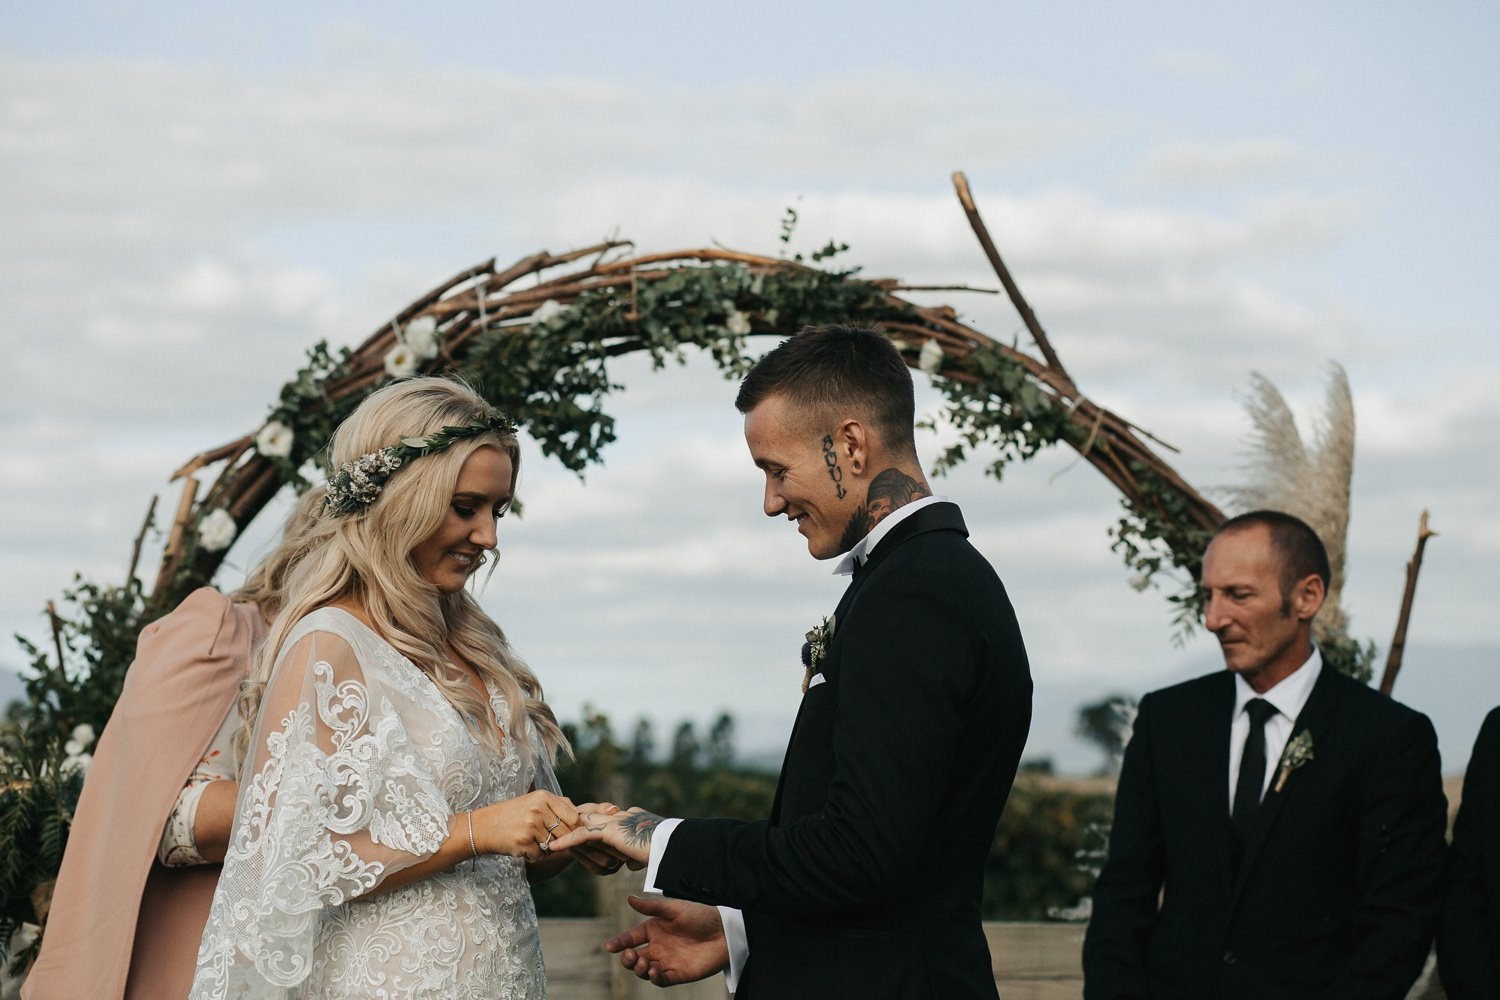 zonzo-estate-yarra-valley-wedding-photographer_0064.jpg